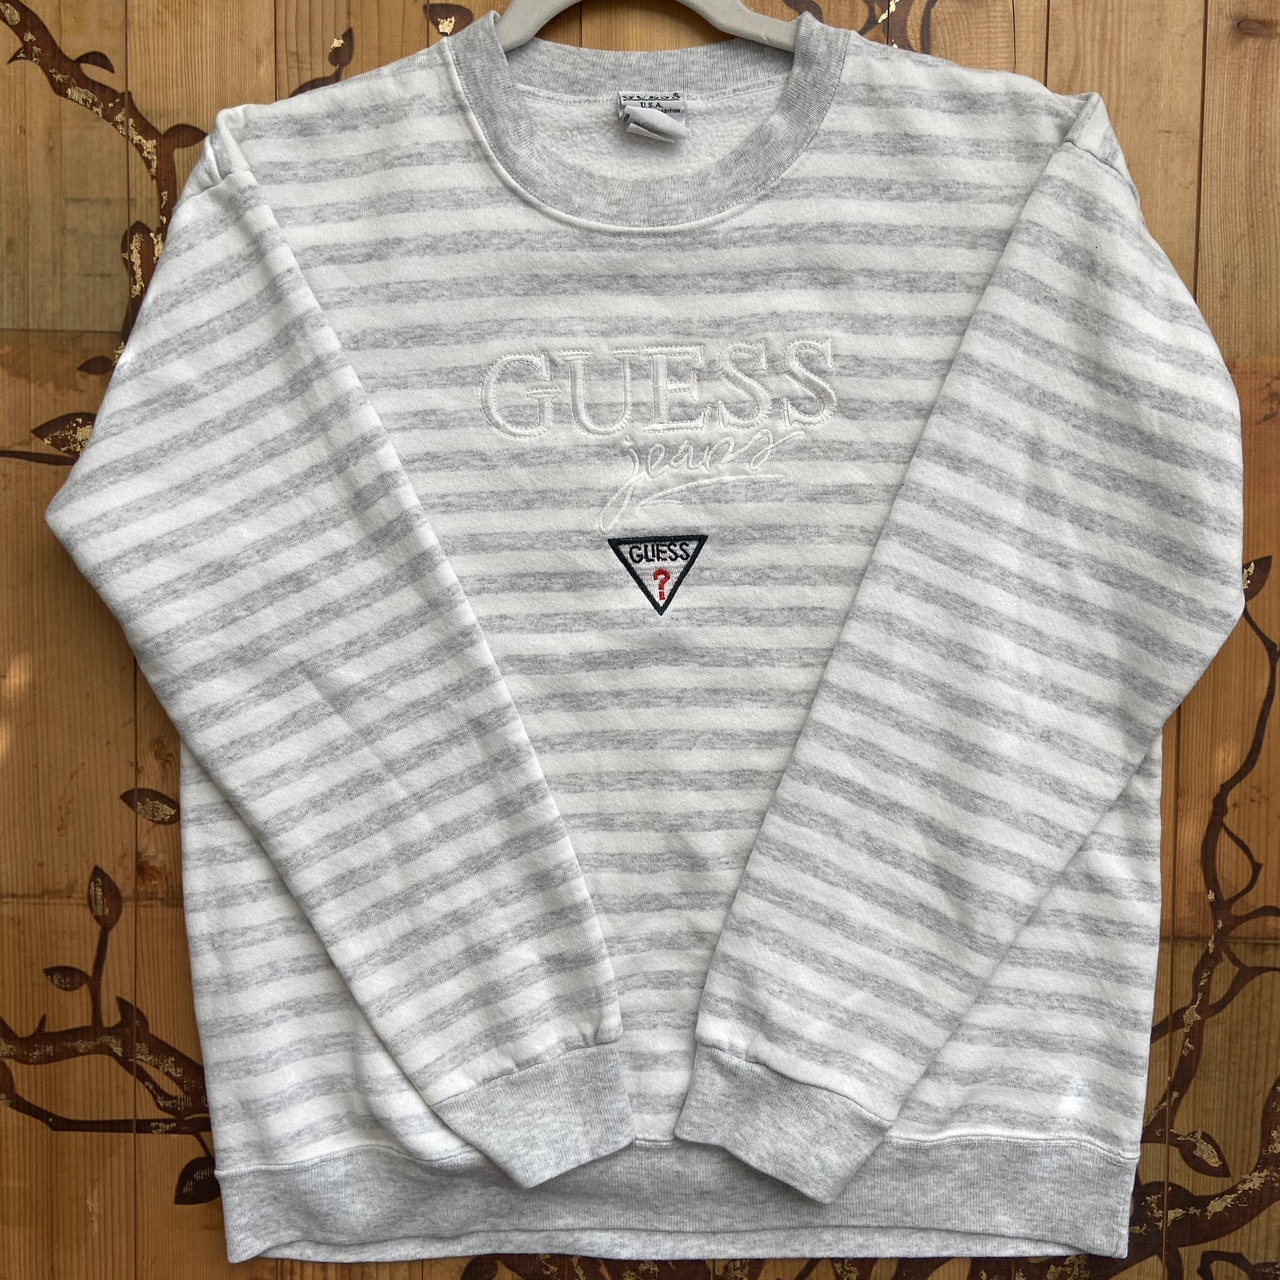 Product Image 1 - Vintage guess sweatshirt White striped design